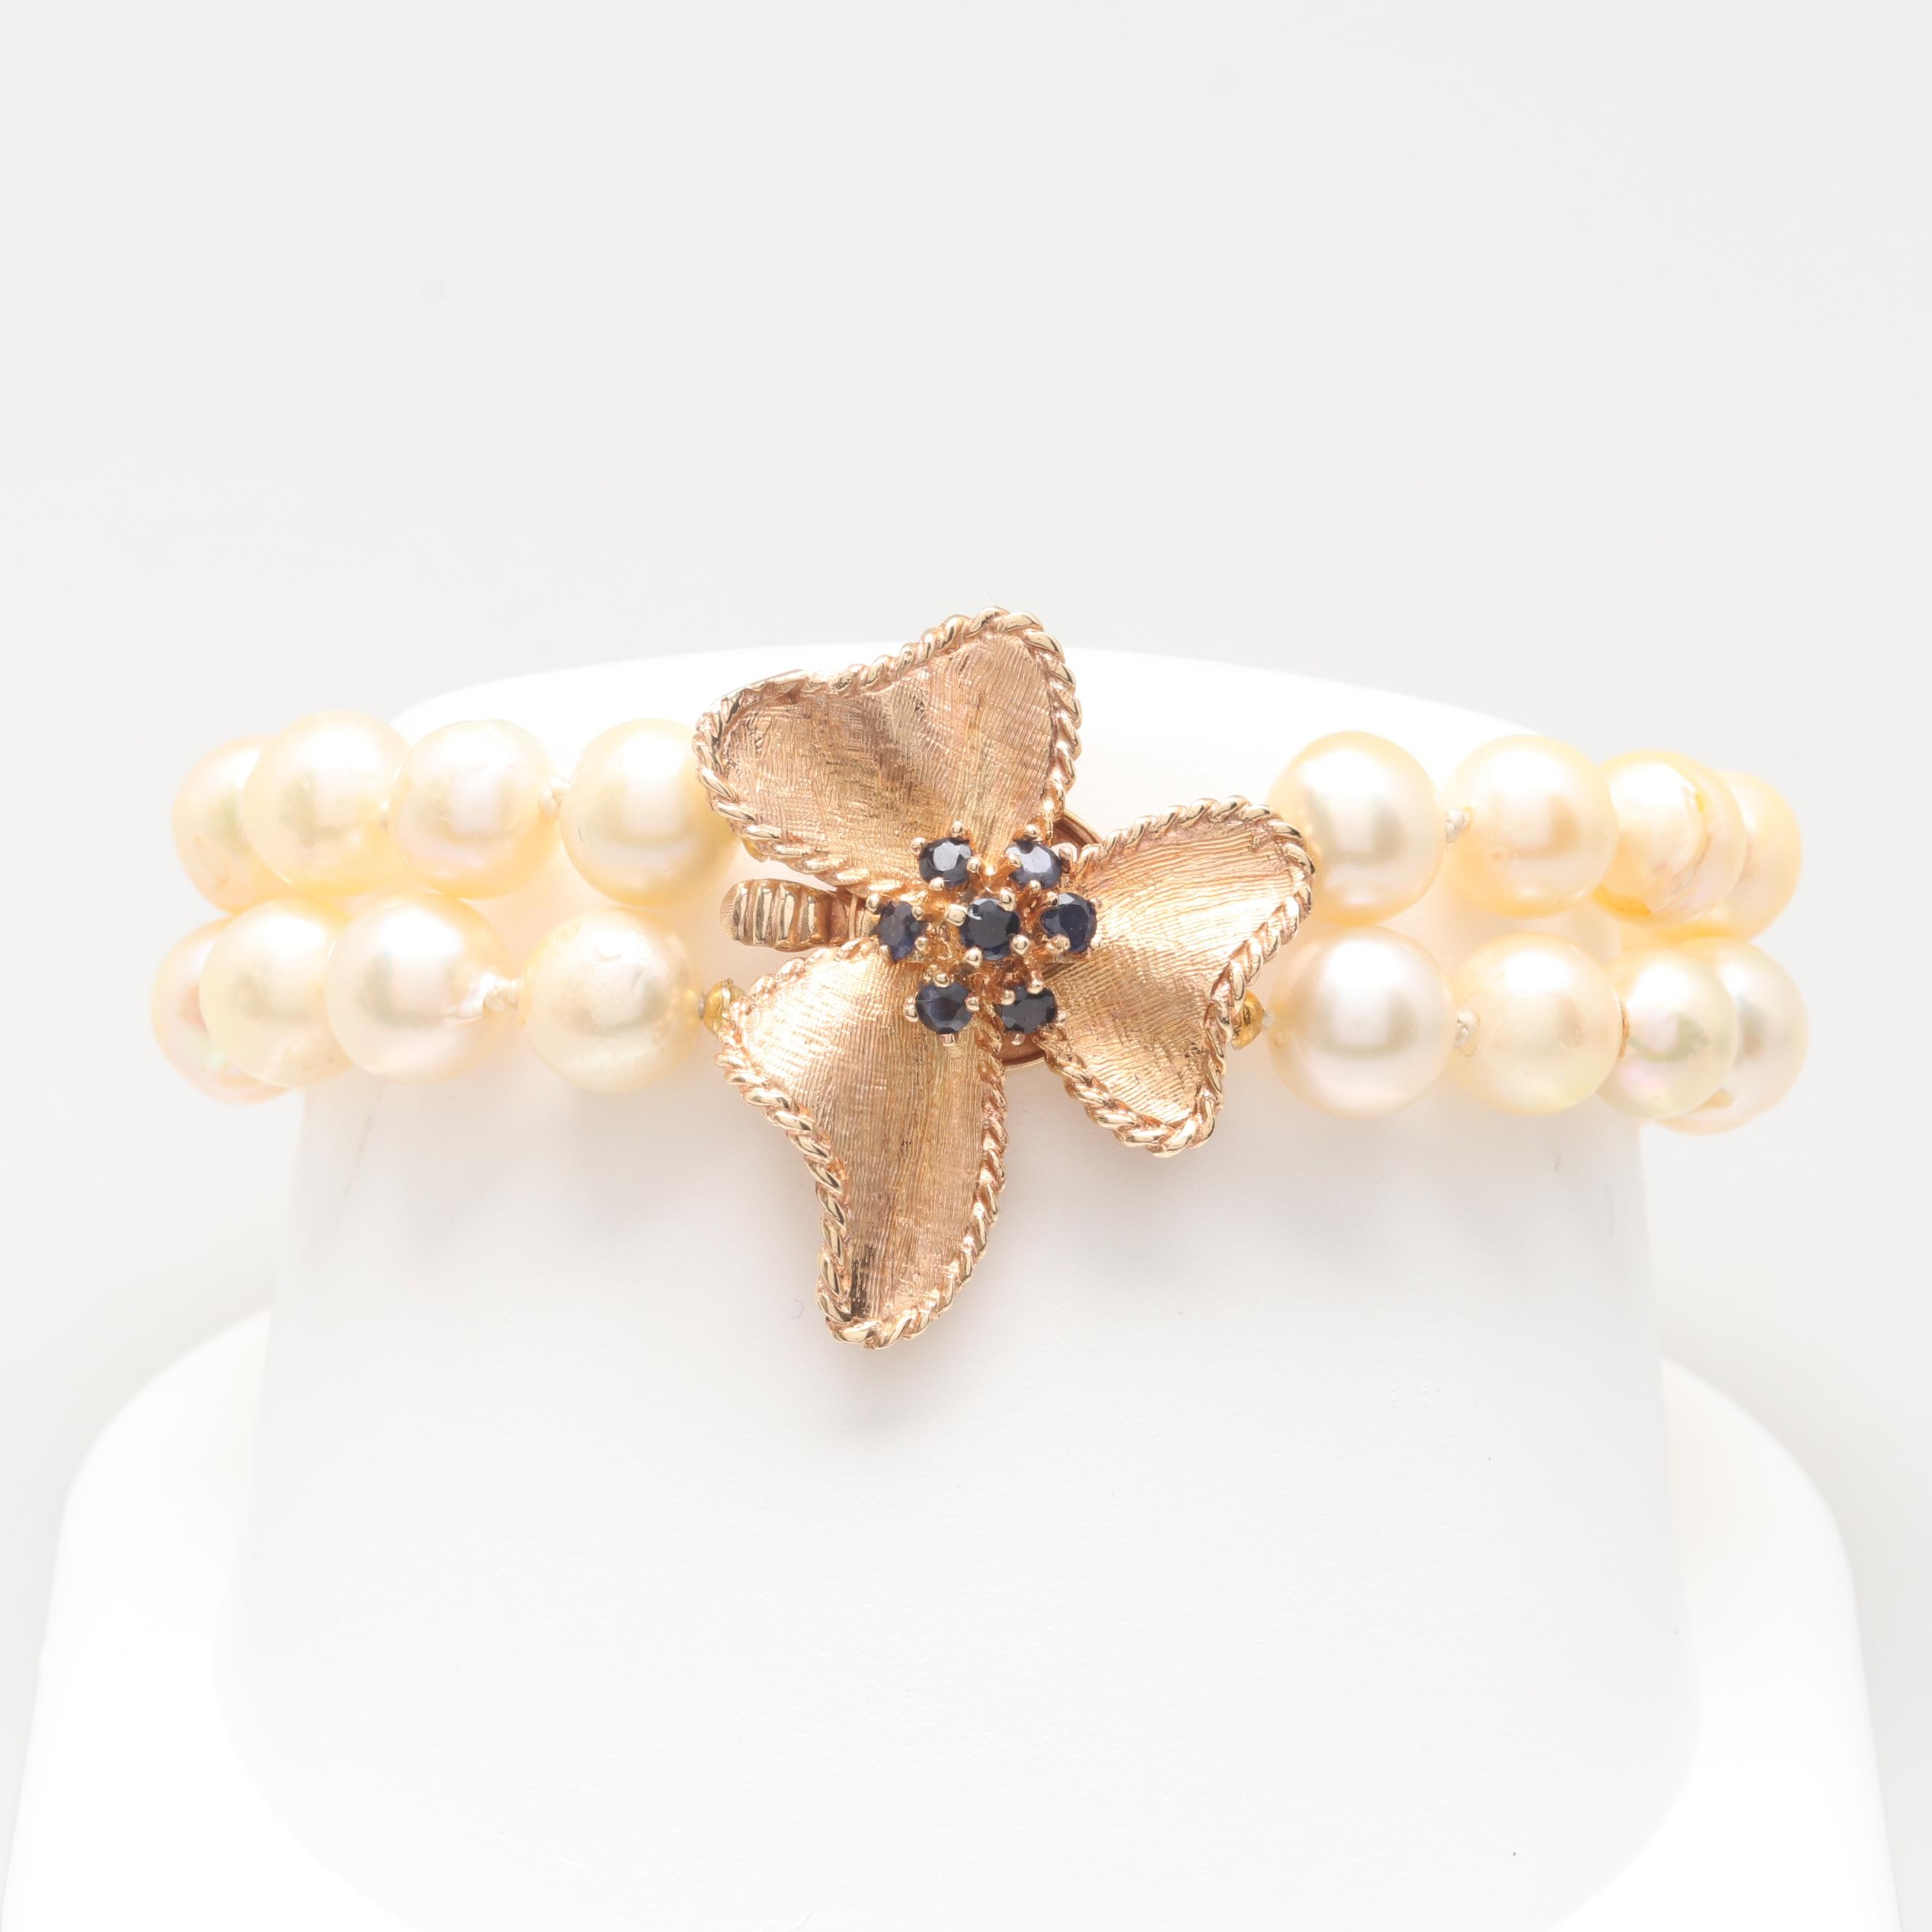 14K Yellow Gold Cultured Pearl and Blue Sapphire Bracelet